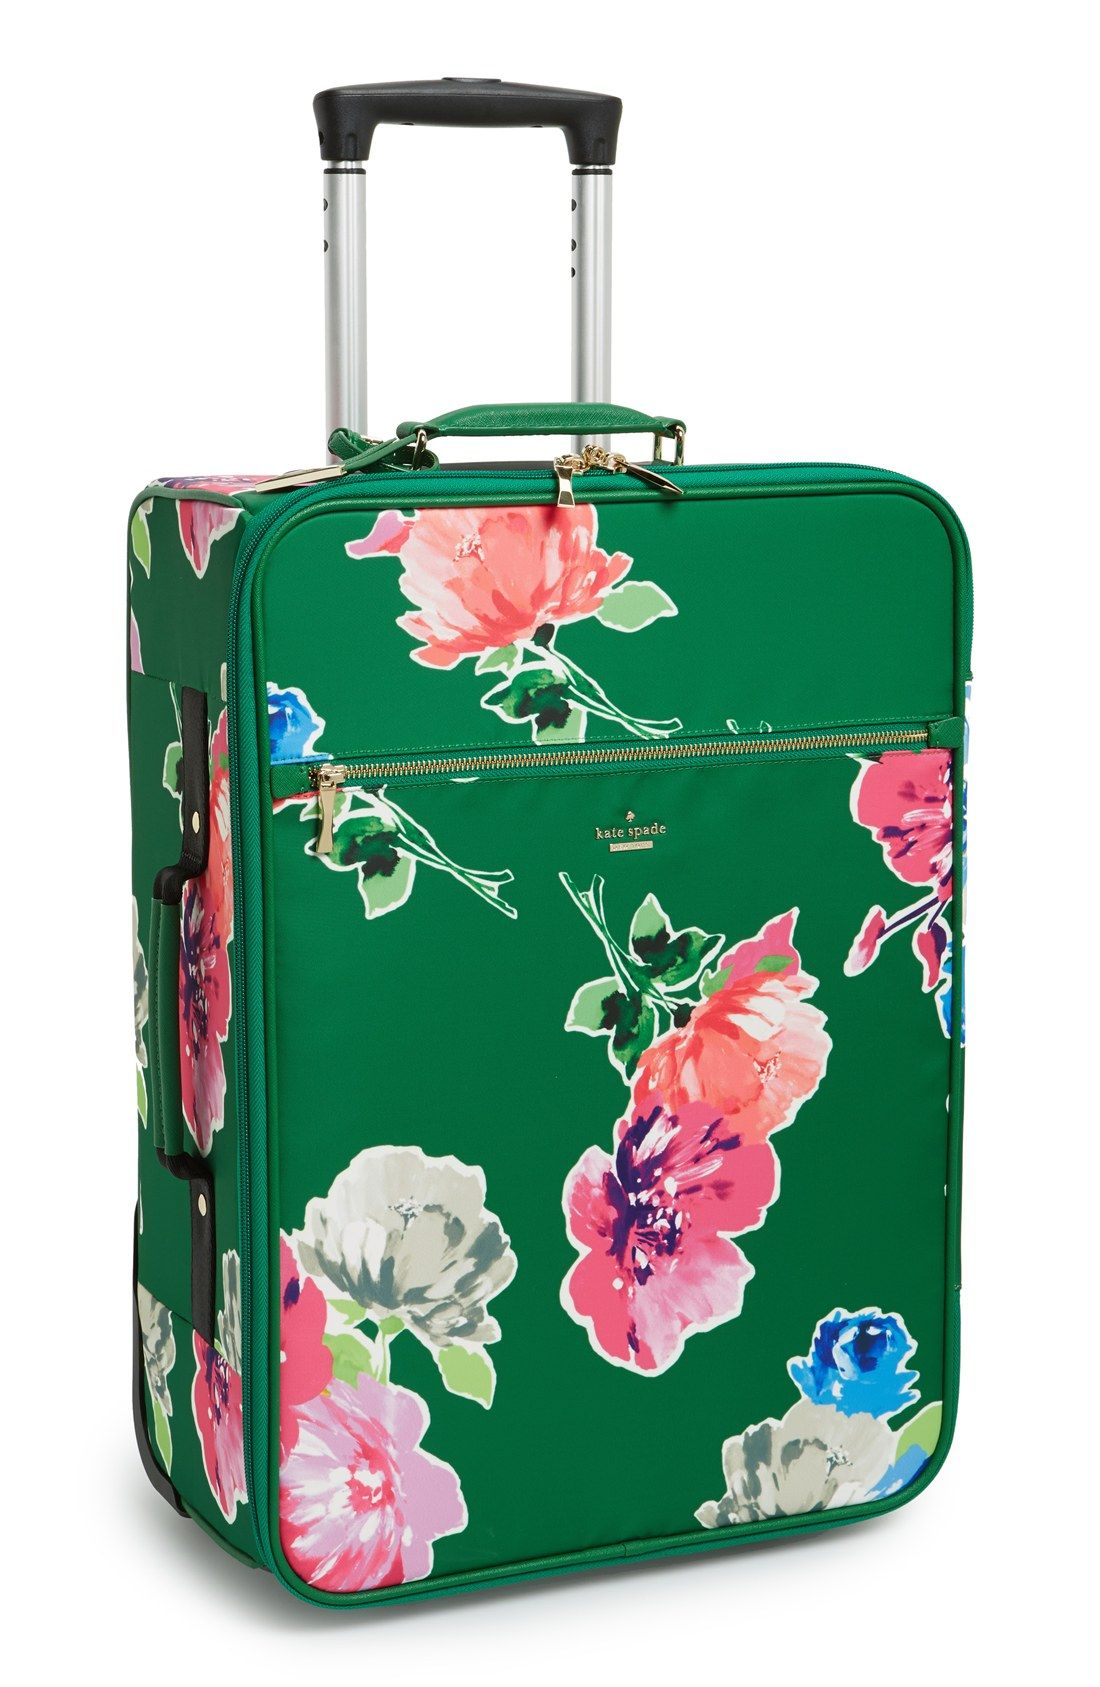 Ready to travel in style with this pretty green and floral ...